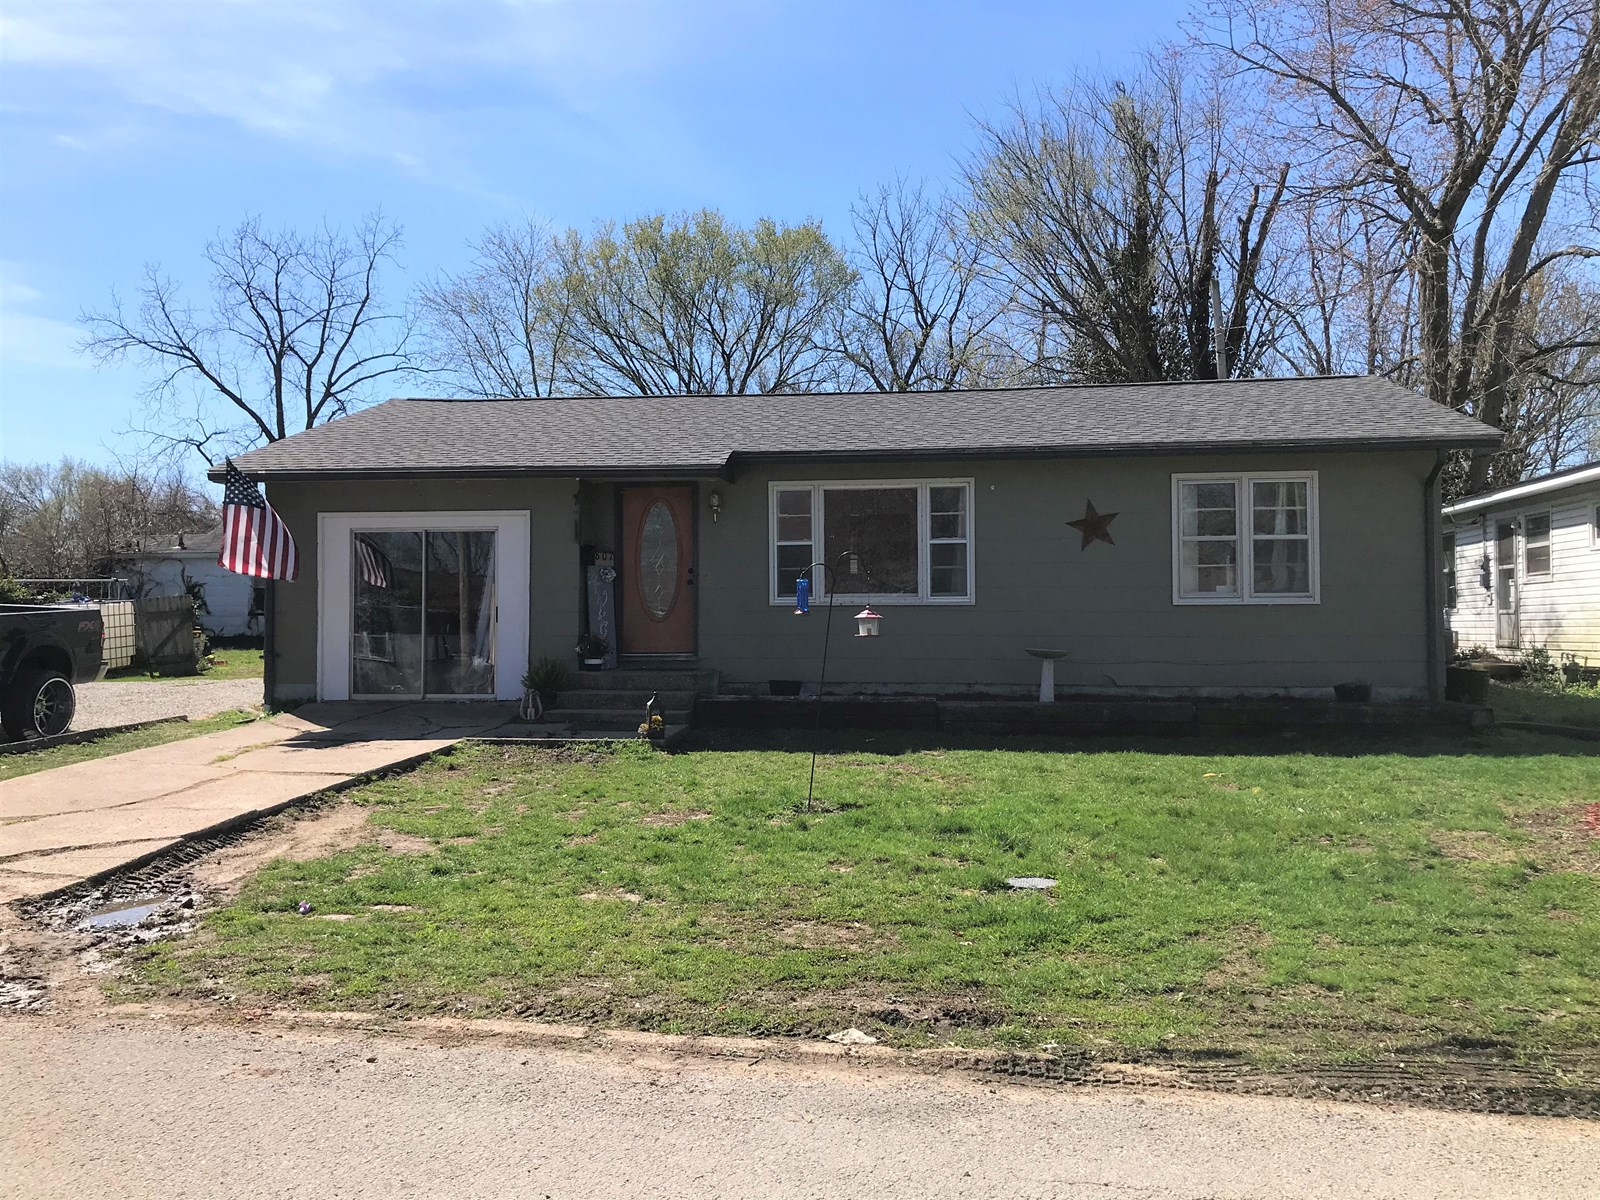 3 Bedroom home on double lot in Salem with updates.